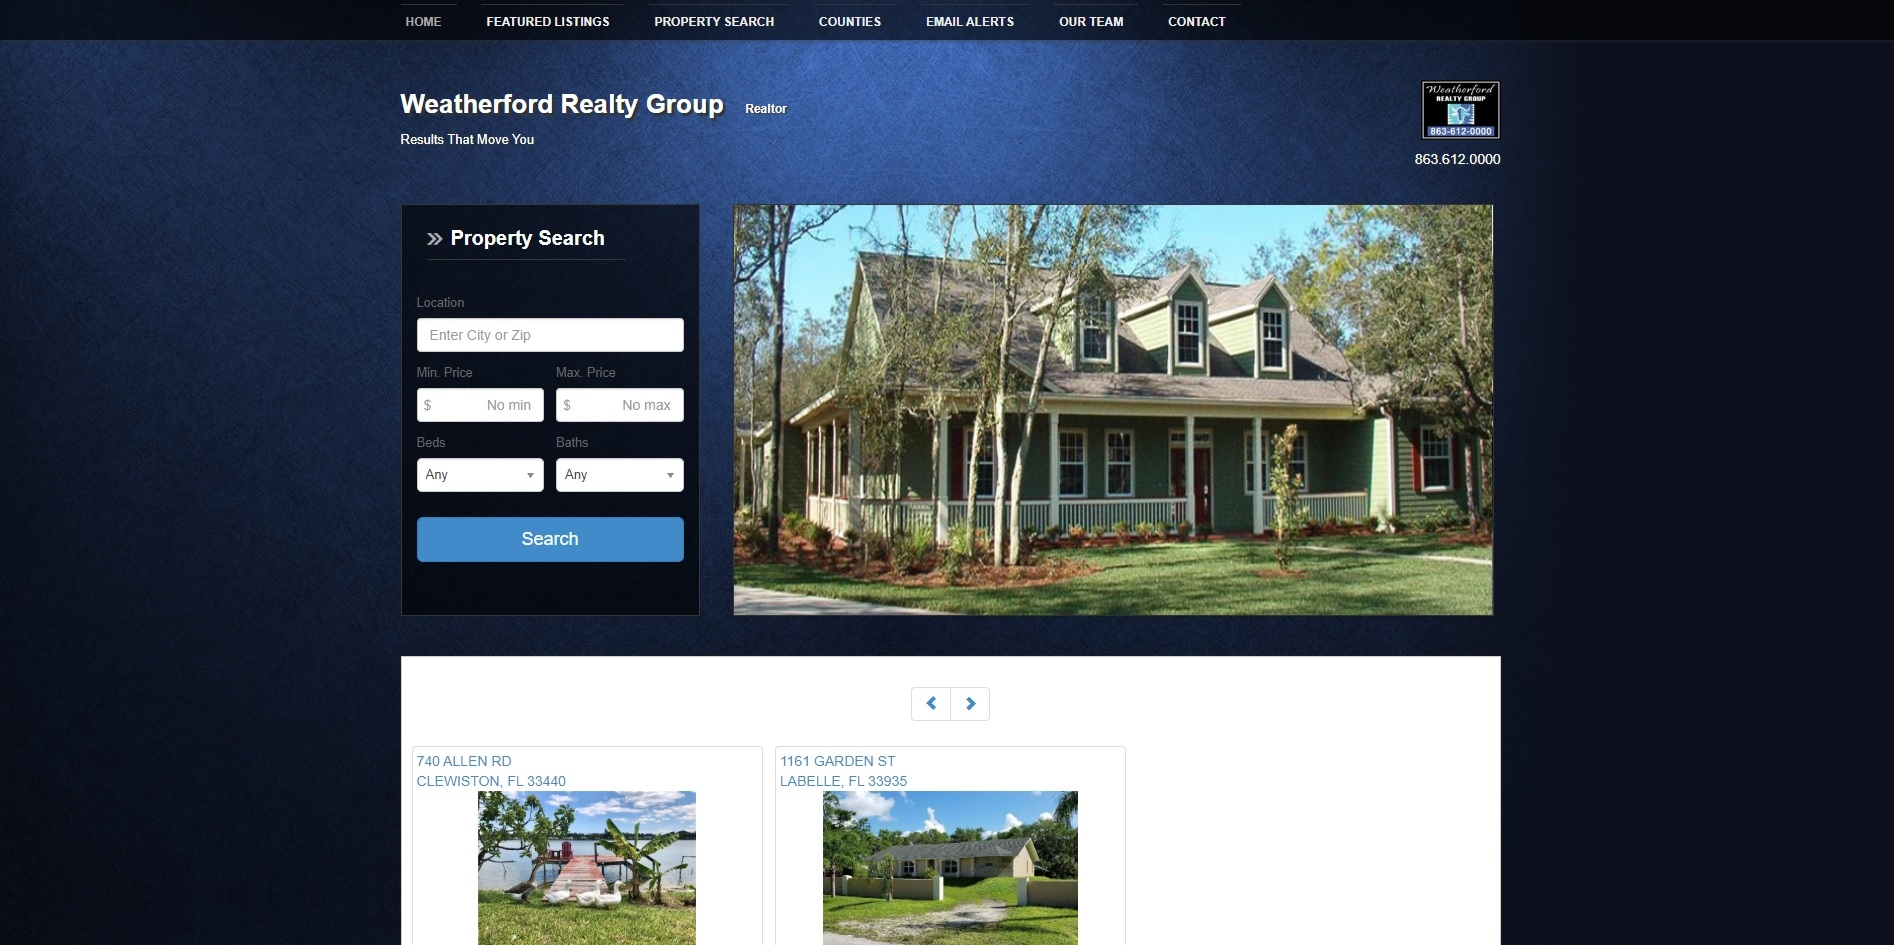 Weatherford Realty Group